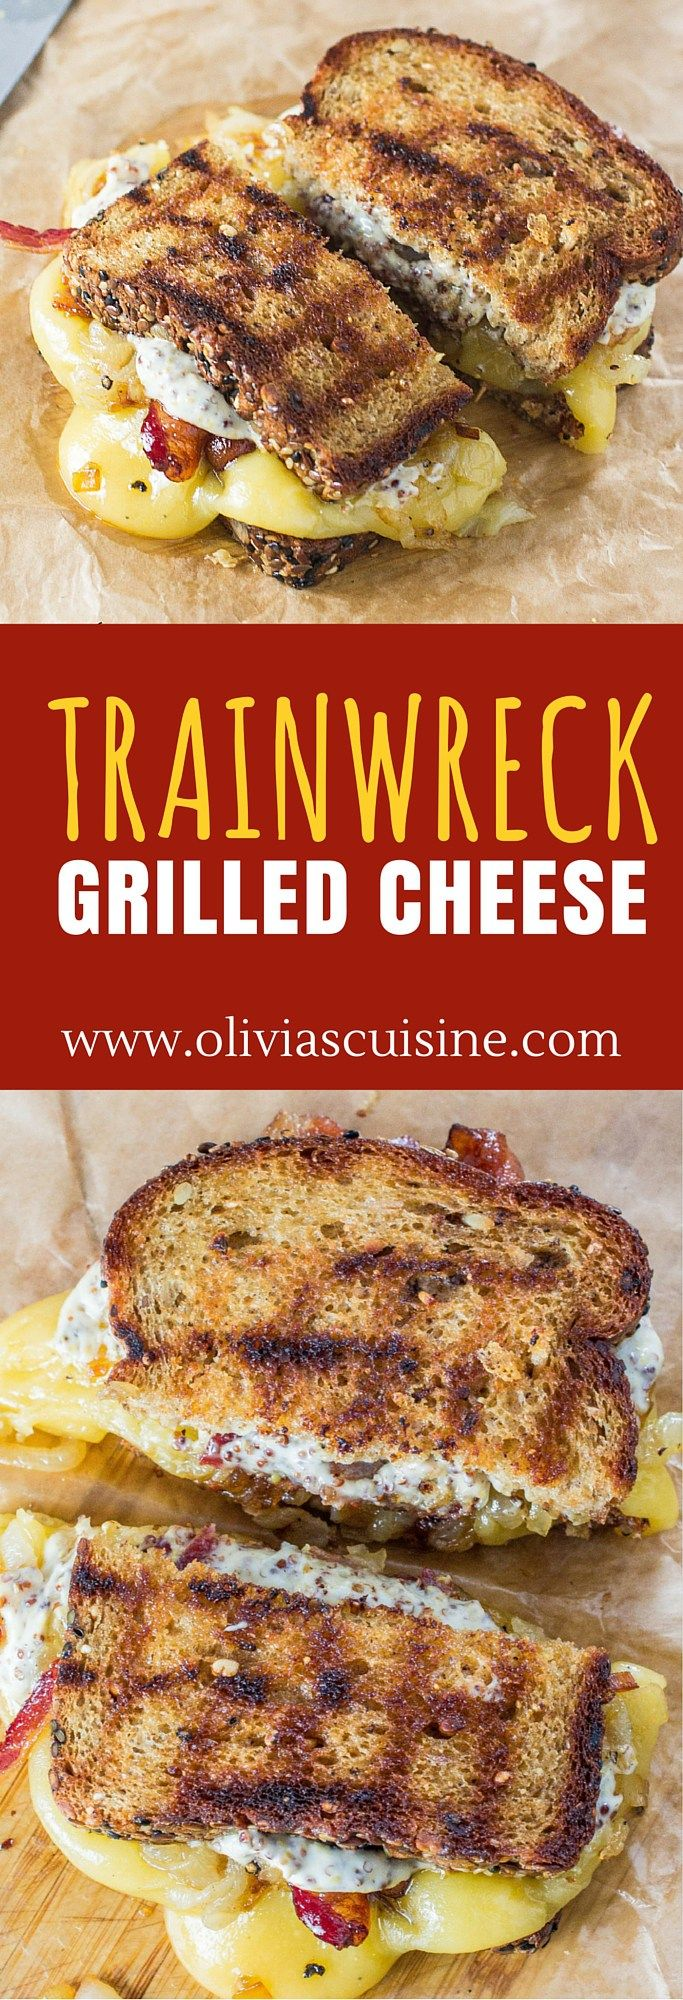 Trainwreck Grilled Cheese | www.oliviascuisine.com | Gouda cheese, caramelized onions and Maple Whiskey bacon join forces to create the most amazing grilled cheese ever! (Sponsored by Arla Dofino)